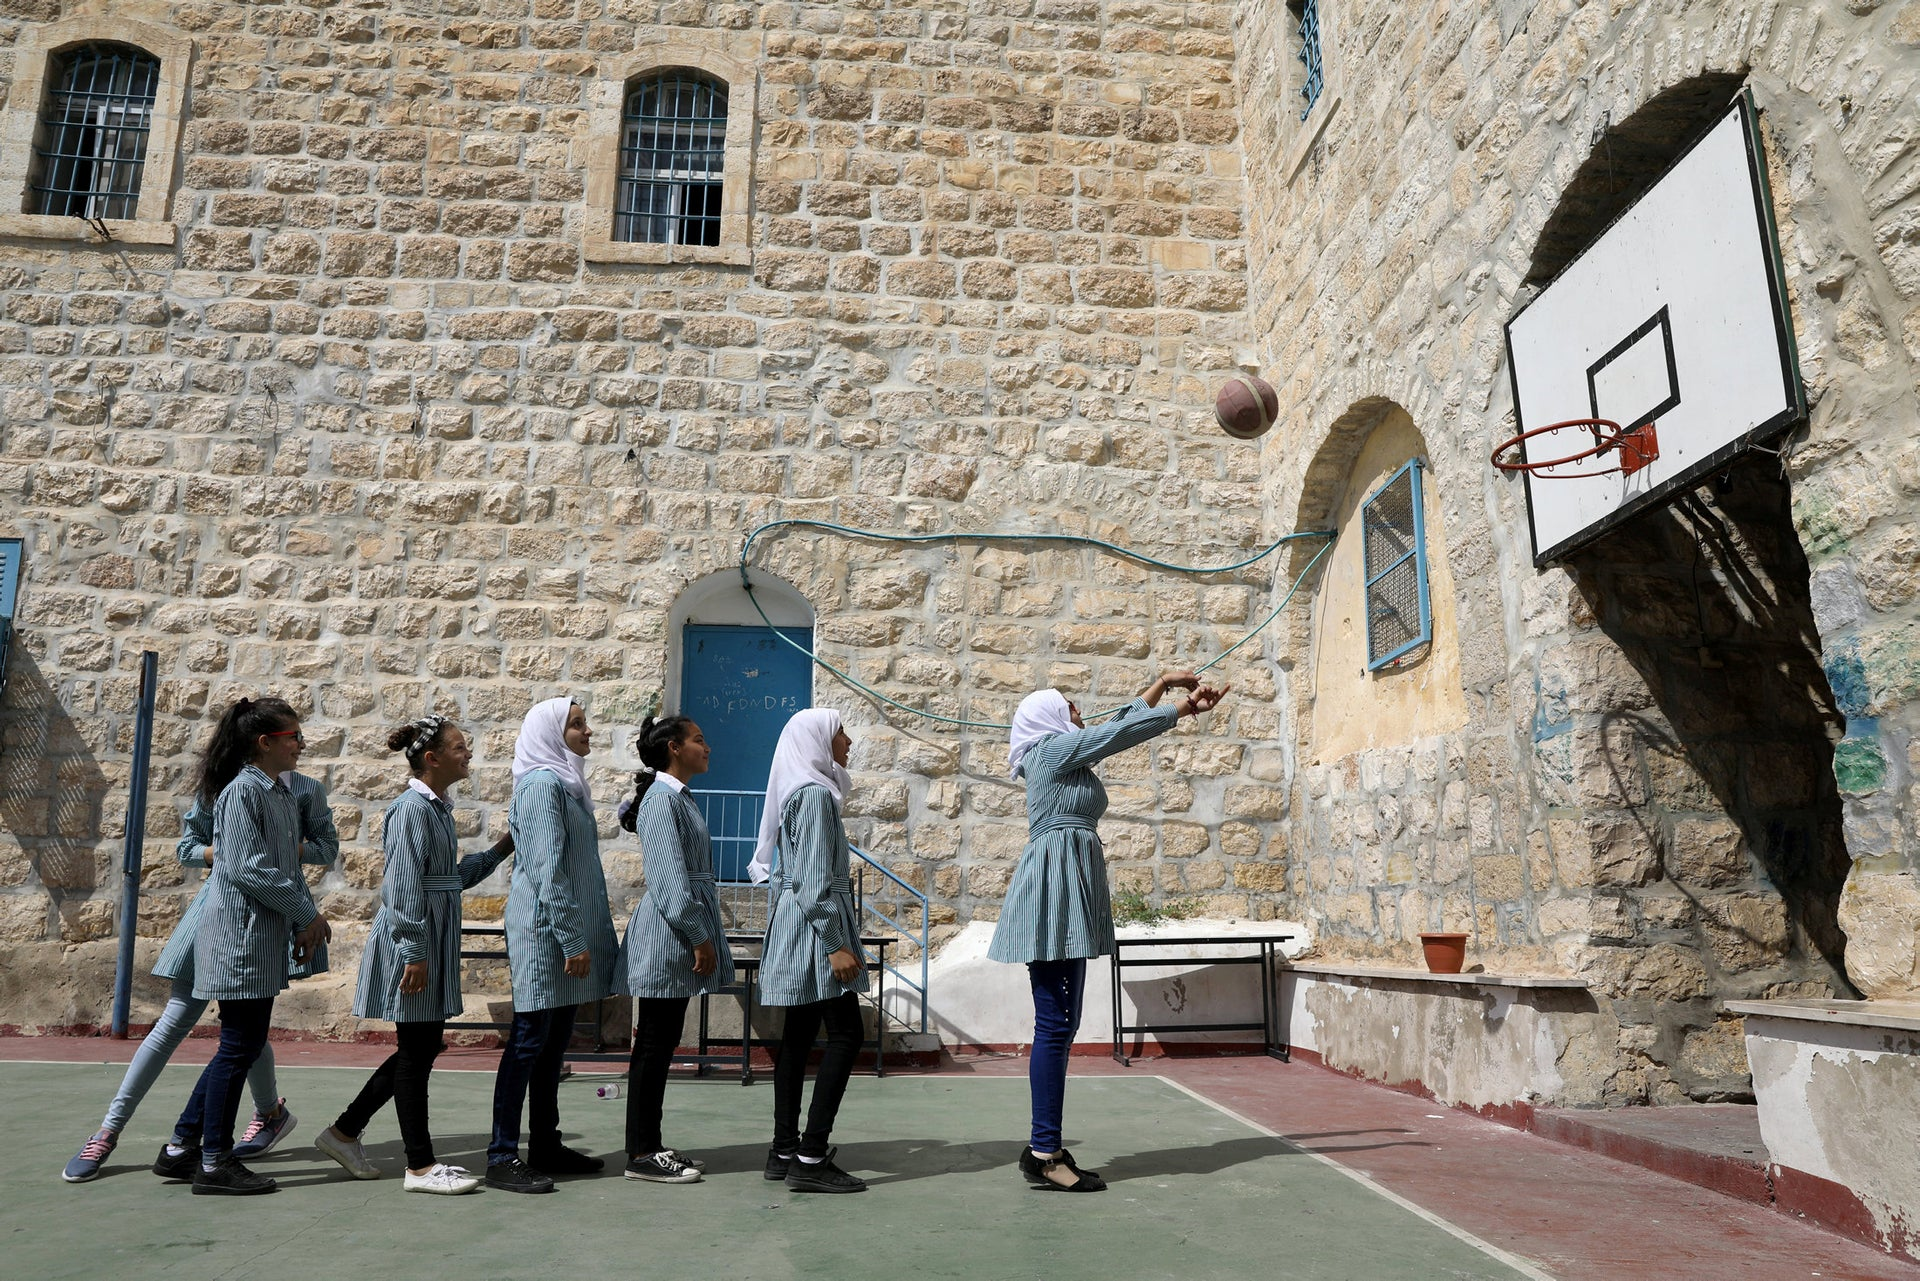 Palestinian schoolgirls play with a ball at school run by UNRWA (United Nations Relief and Works Agency) in Silwan in East Jerusalem October 10, 2018.